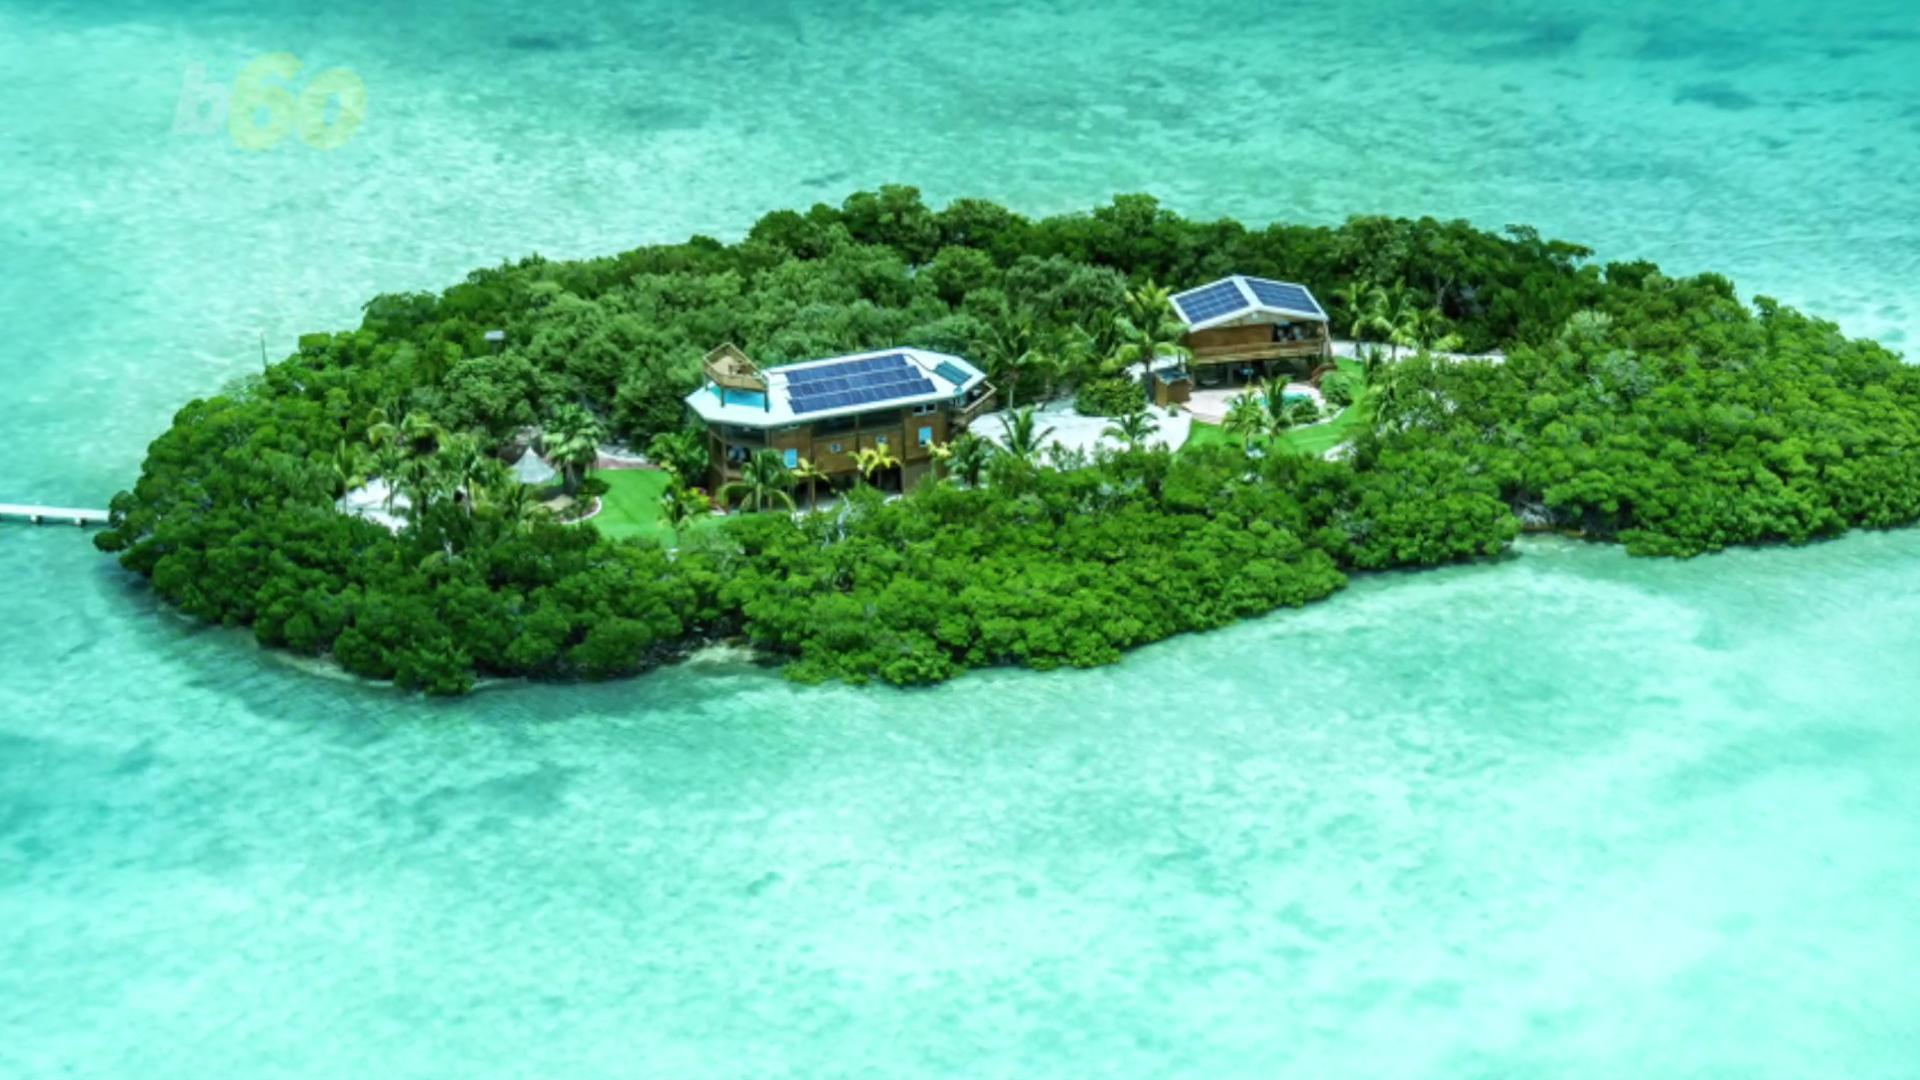 Former Rockstar's Private Island Up For Sale in the Florida Keys